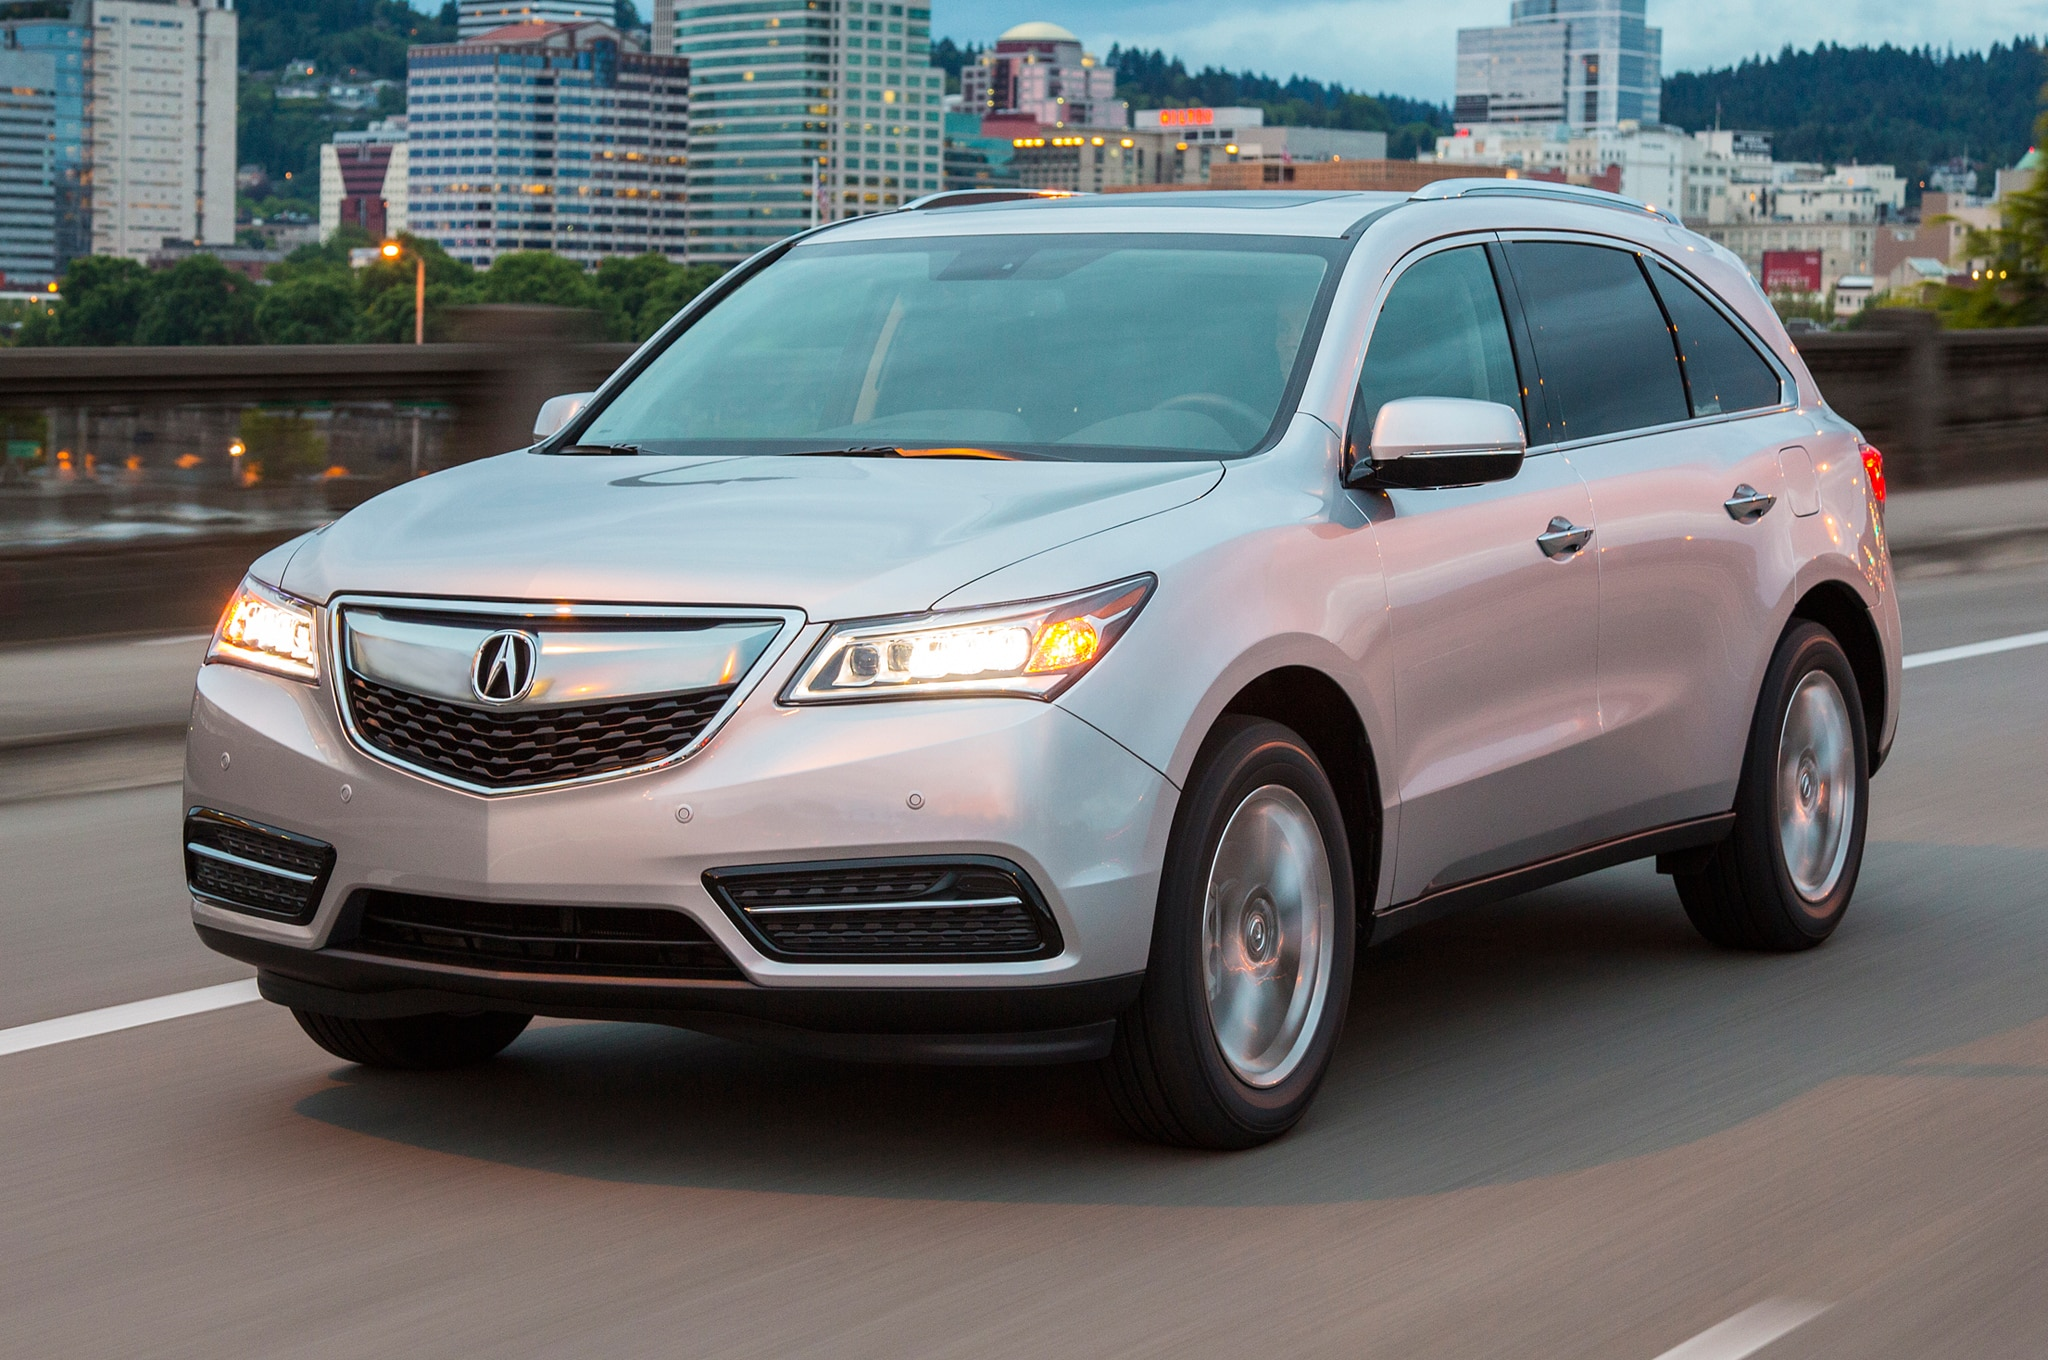 small resolution of 2016 acura mdx updated with nine speed automatic new tech features pin 2002 acura mdx engine diagram on pinterest